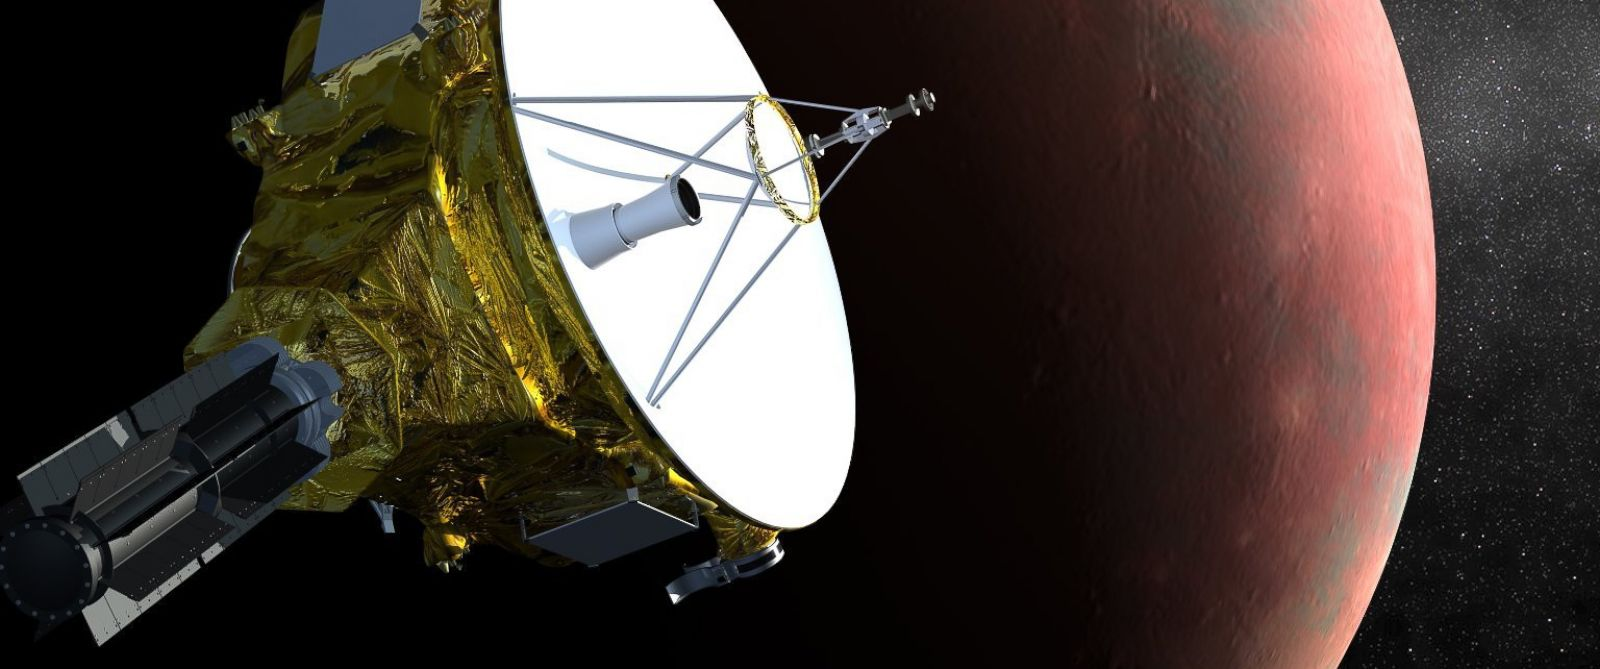 Kerberos Moon Of Plluto: New Horizons: 5 Discoveries The Space Probe Made On Its